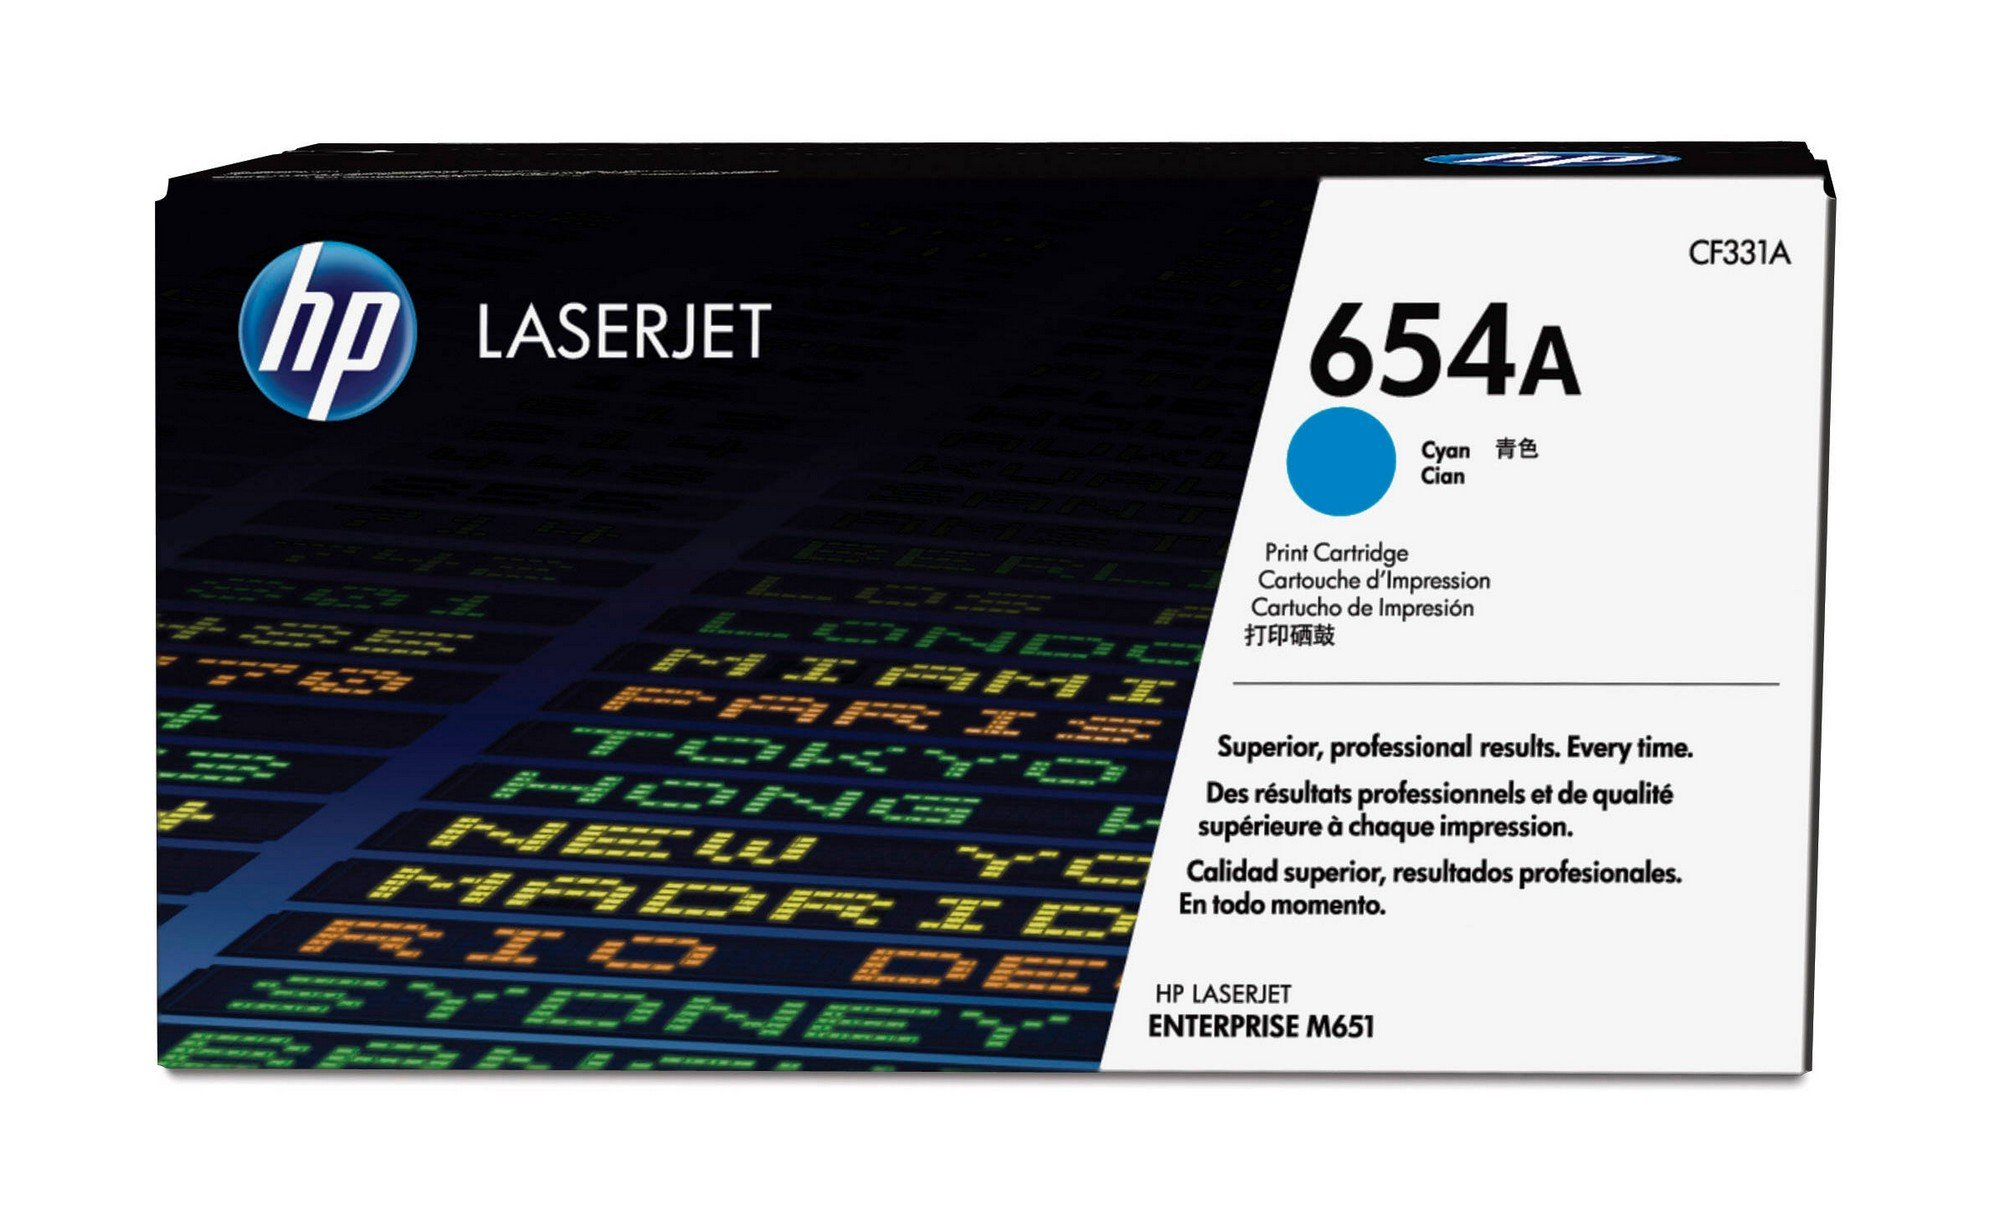 HP 654A (CF331A) Cyan Original Toner Cartridge